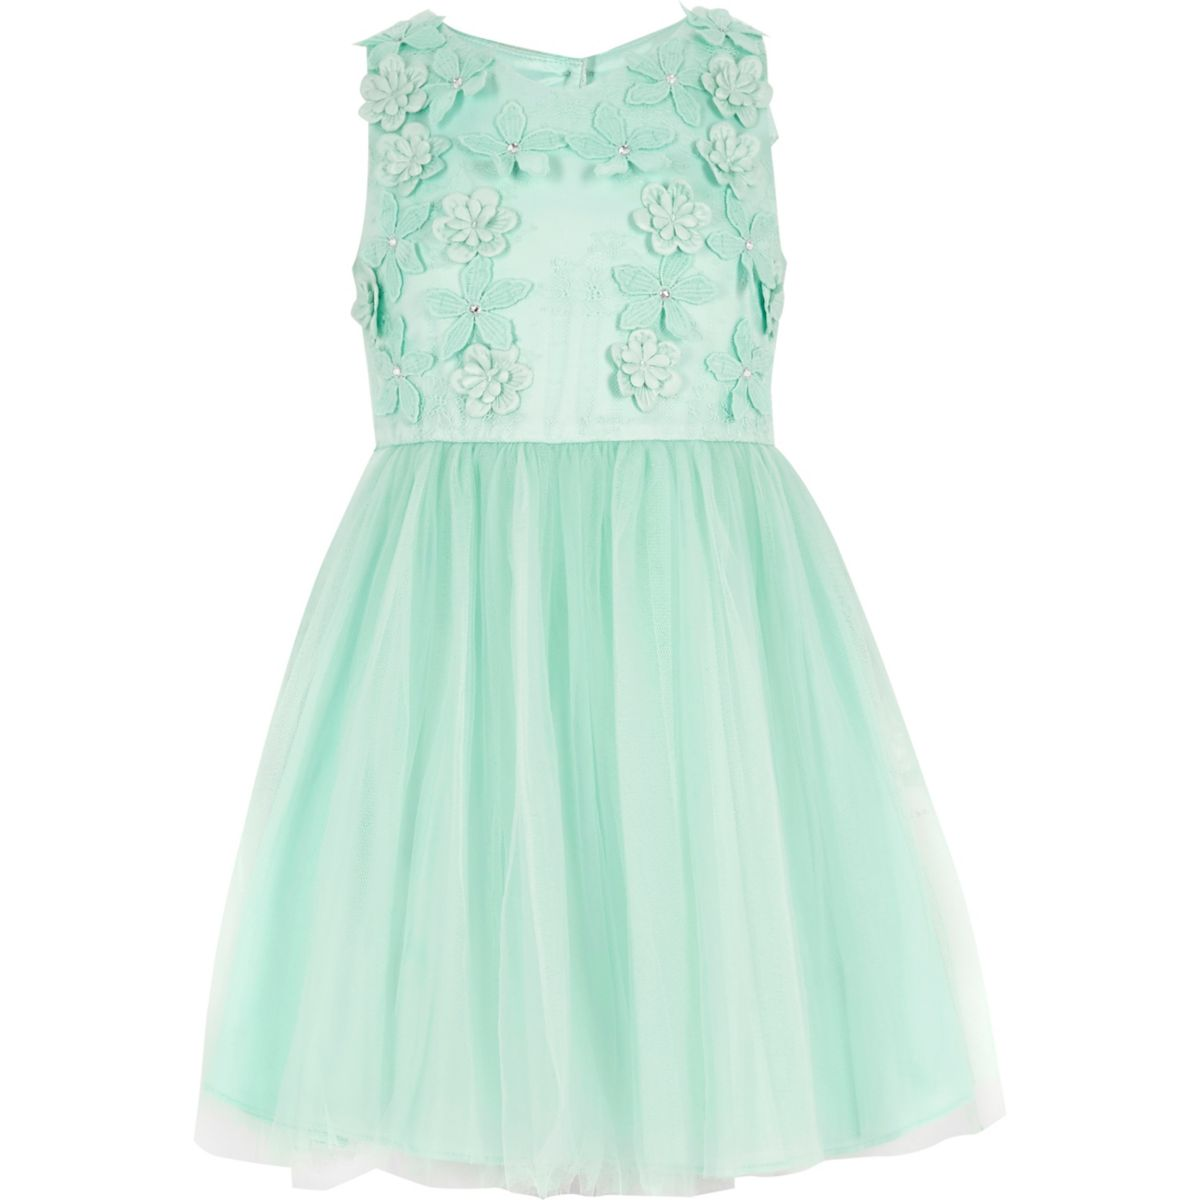 girls green floral embellished prom dress party dresses